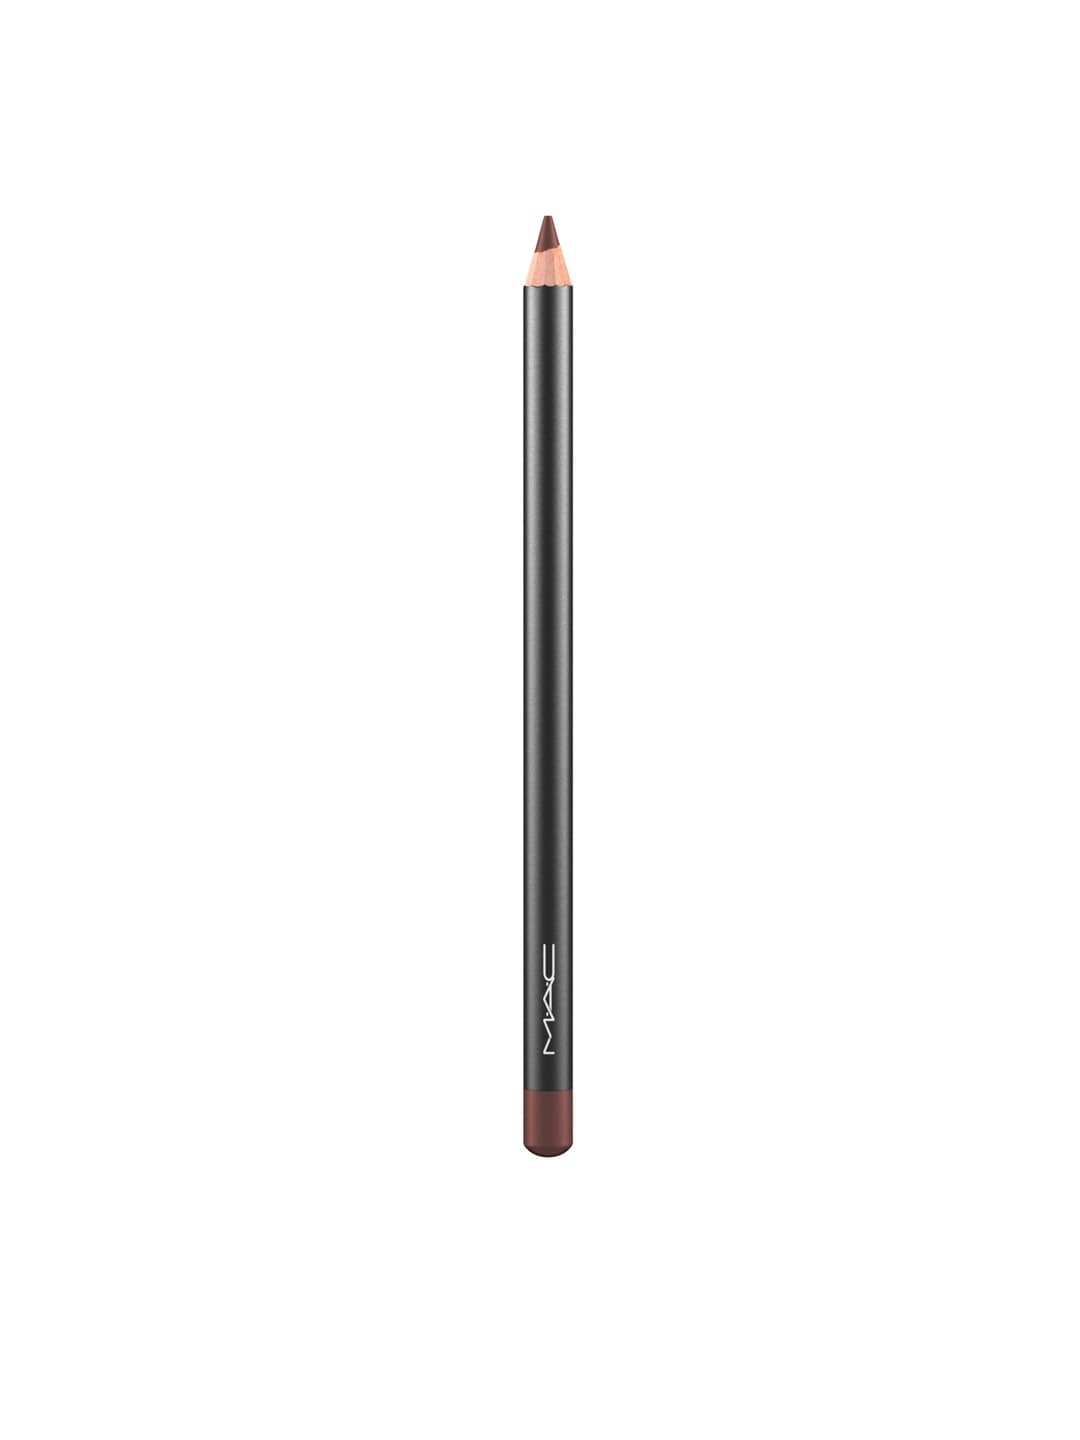 M.A.C Chestnut Lip Pencil image